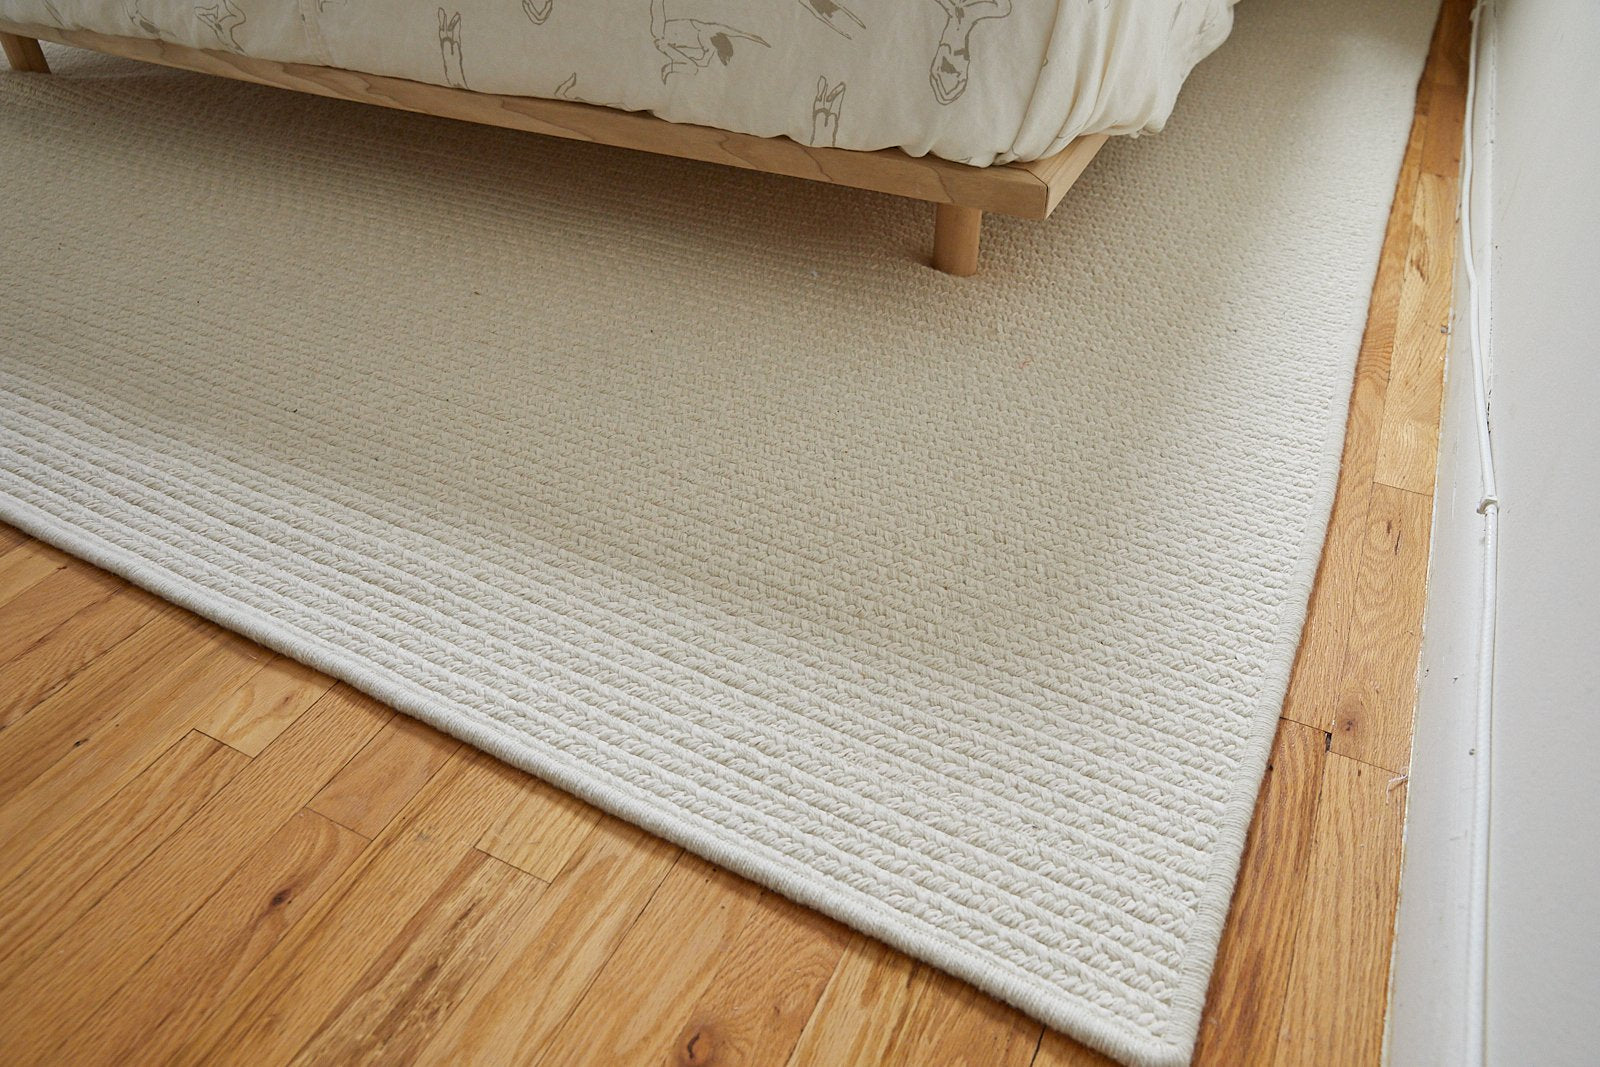 Woven Rug // Cream Wool & Natural Linen